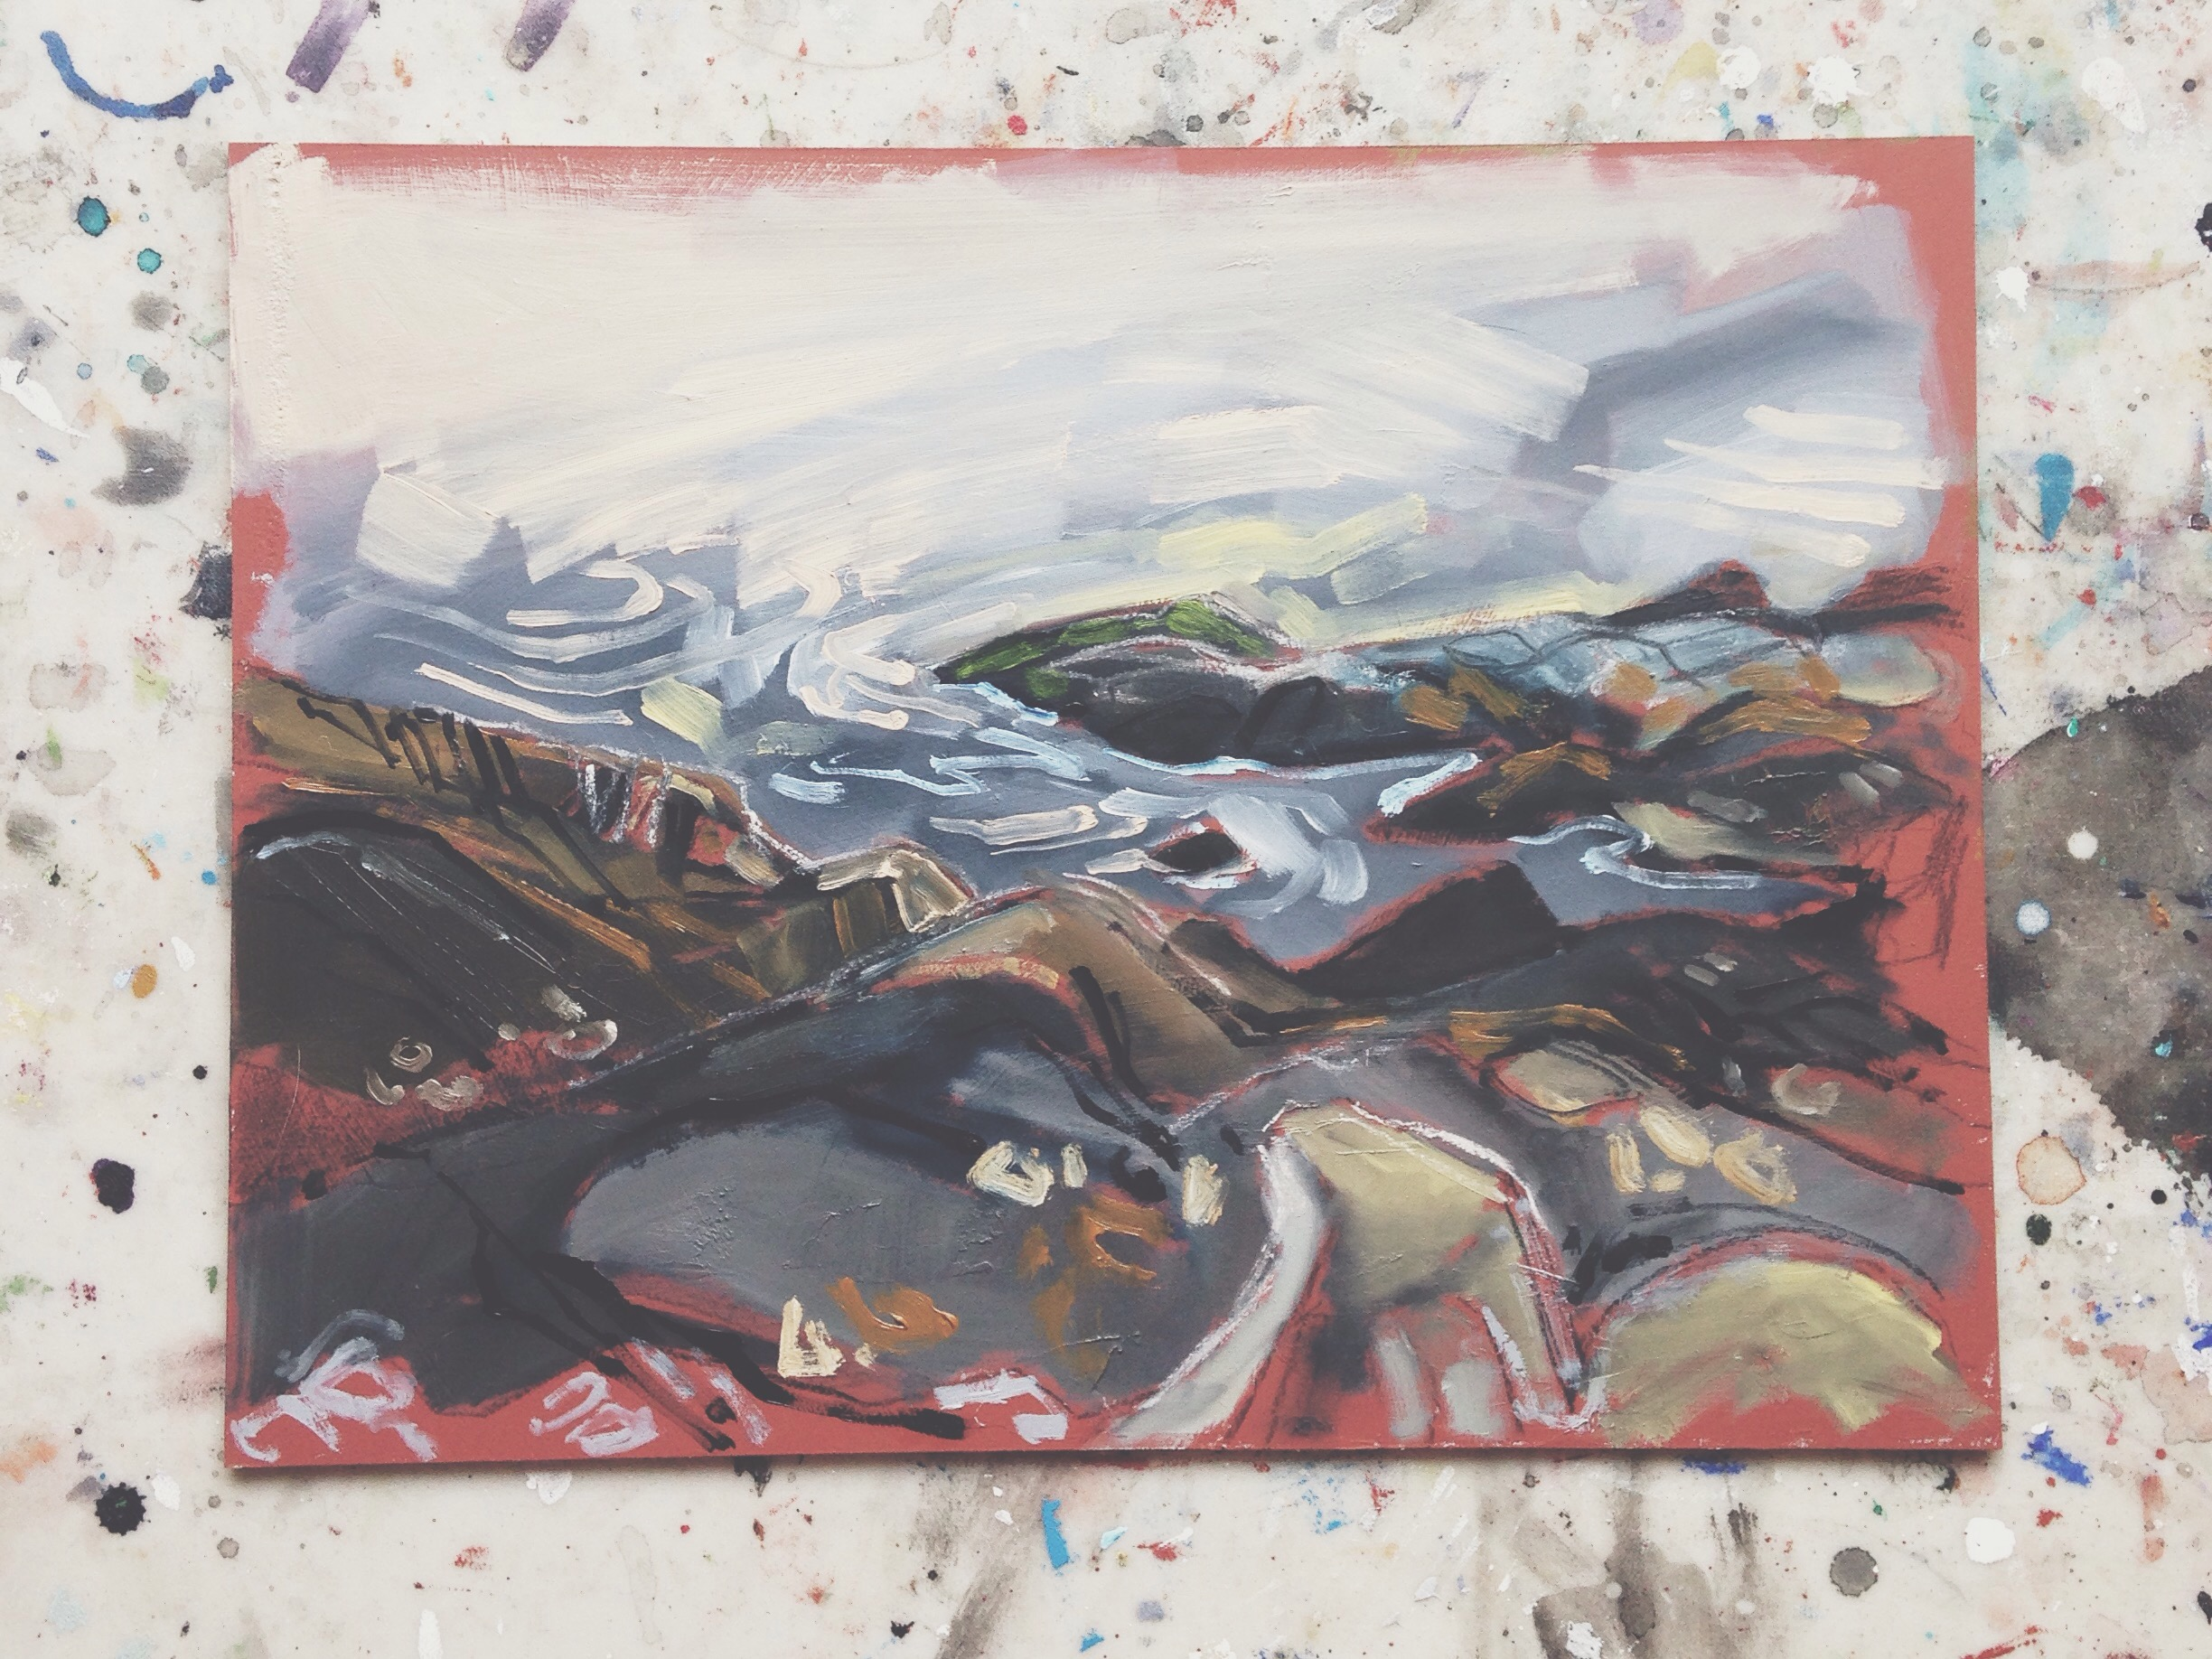 during sunset at macualay point, victoria, charcoal & oil on masonite, 9x12, 2016